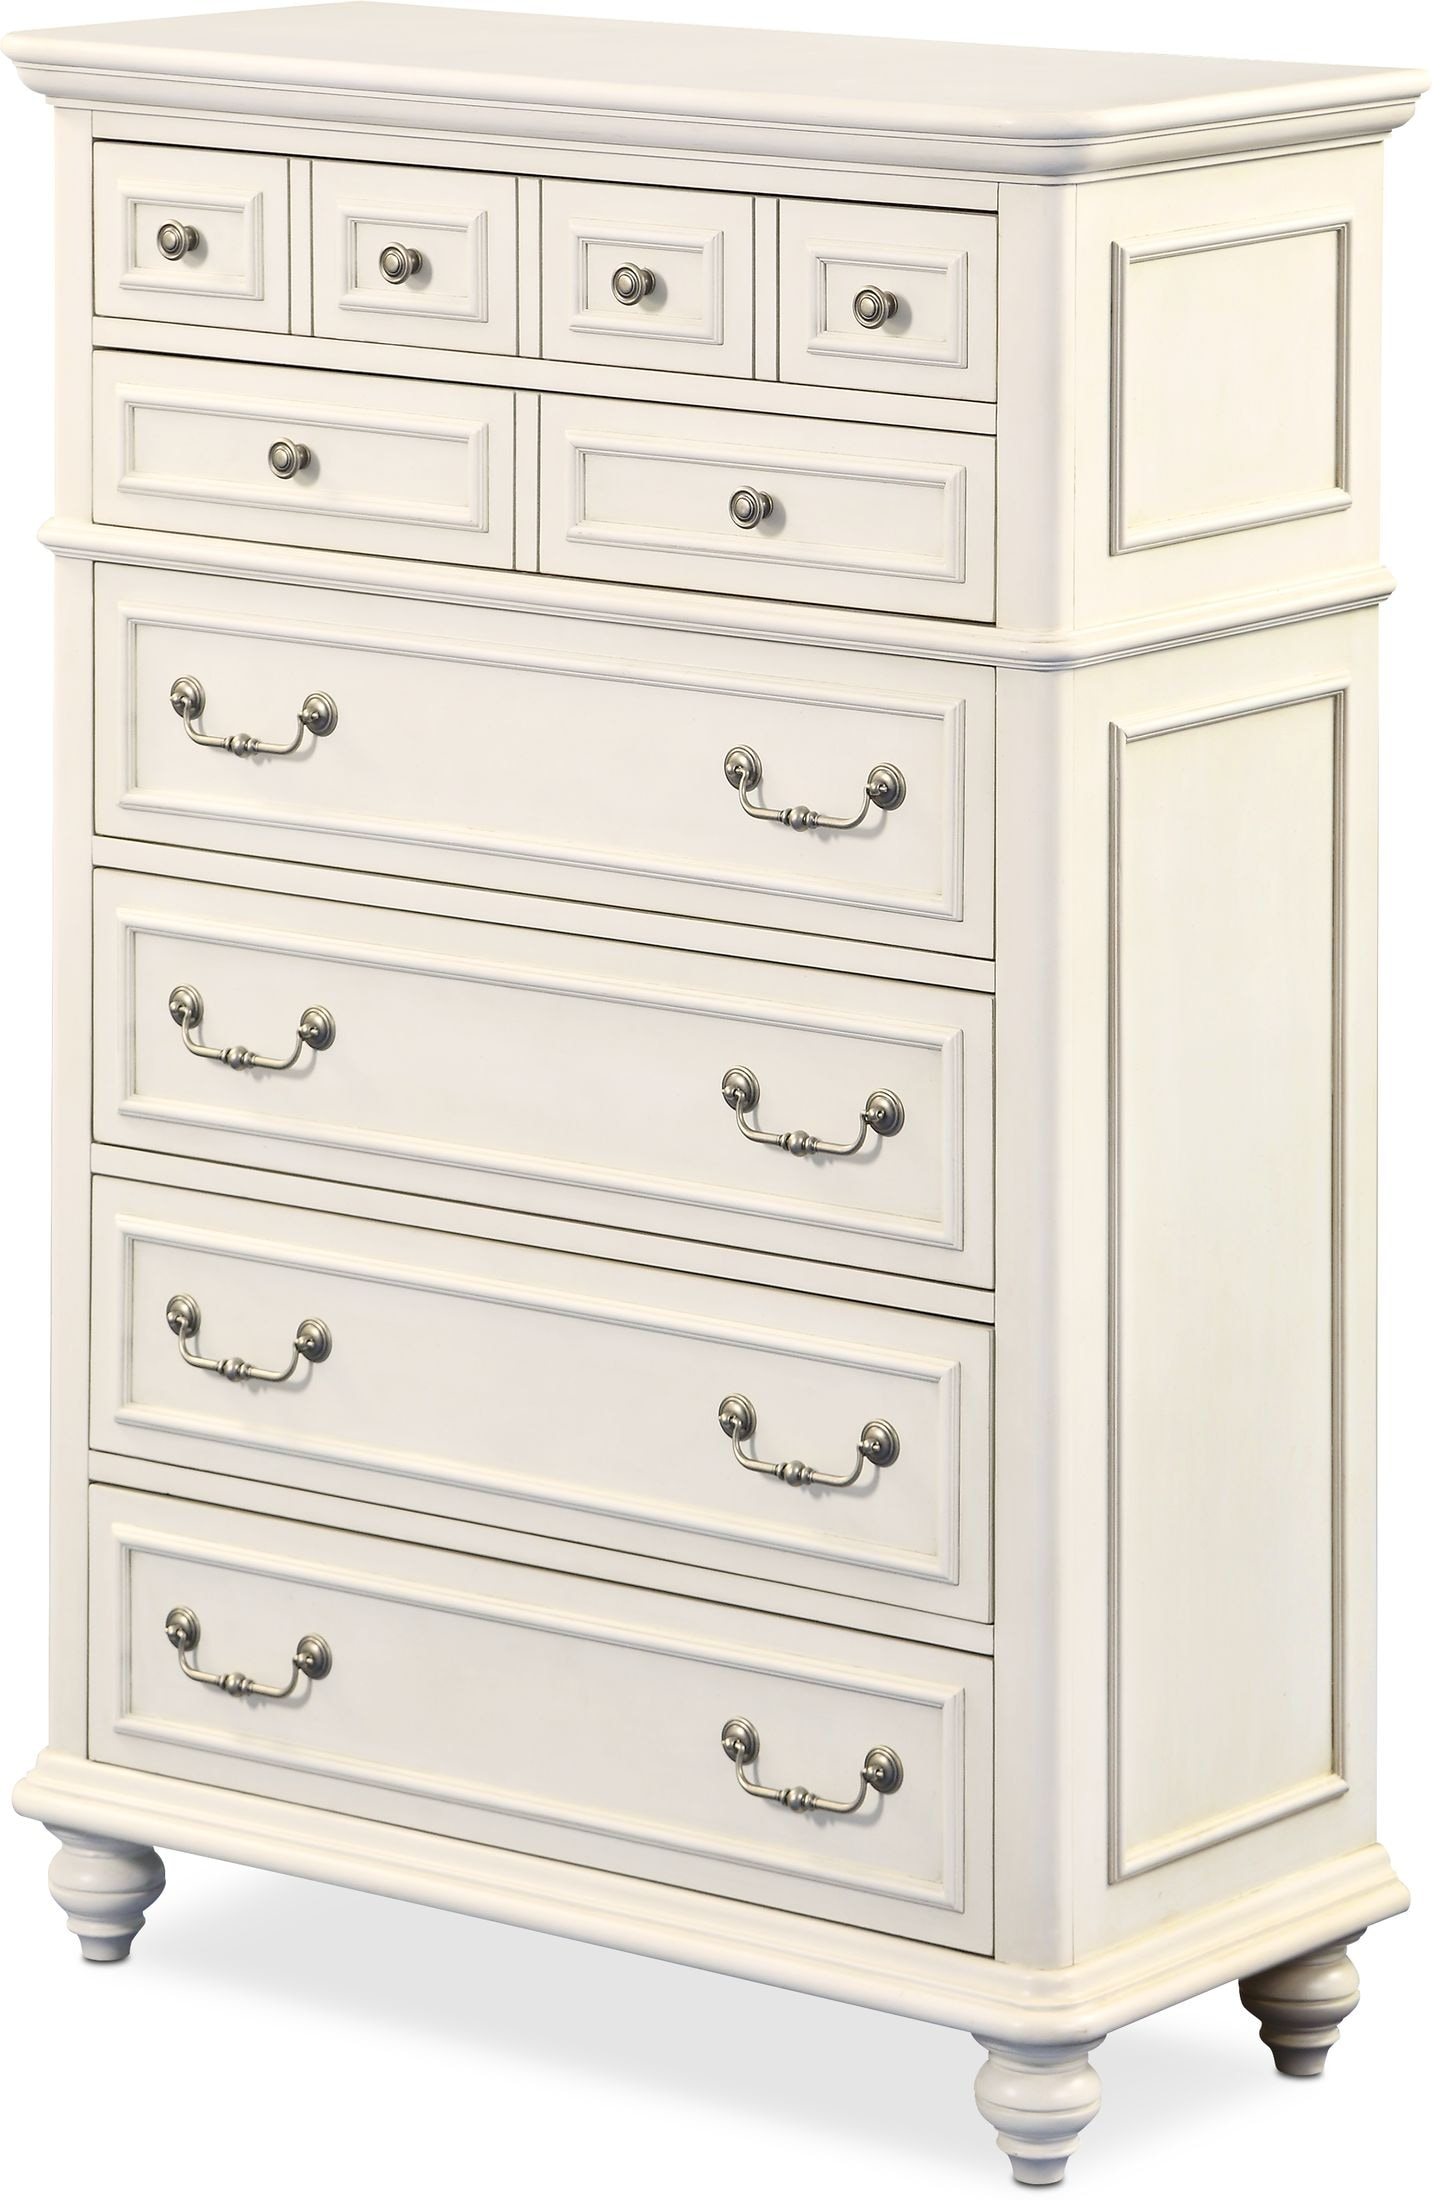 Bedroom Furniture - Charleston Chest